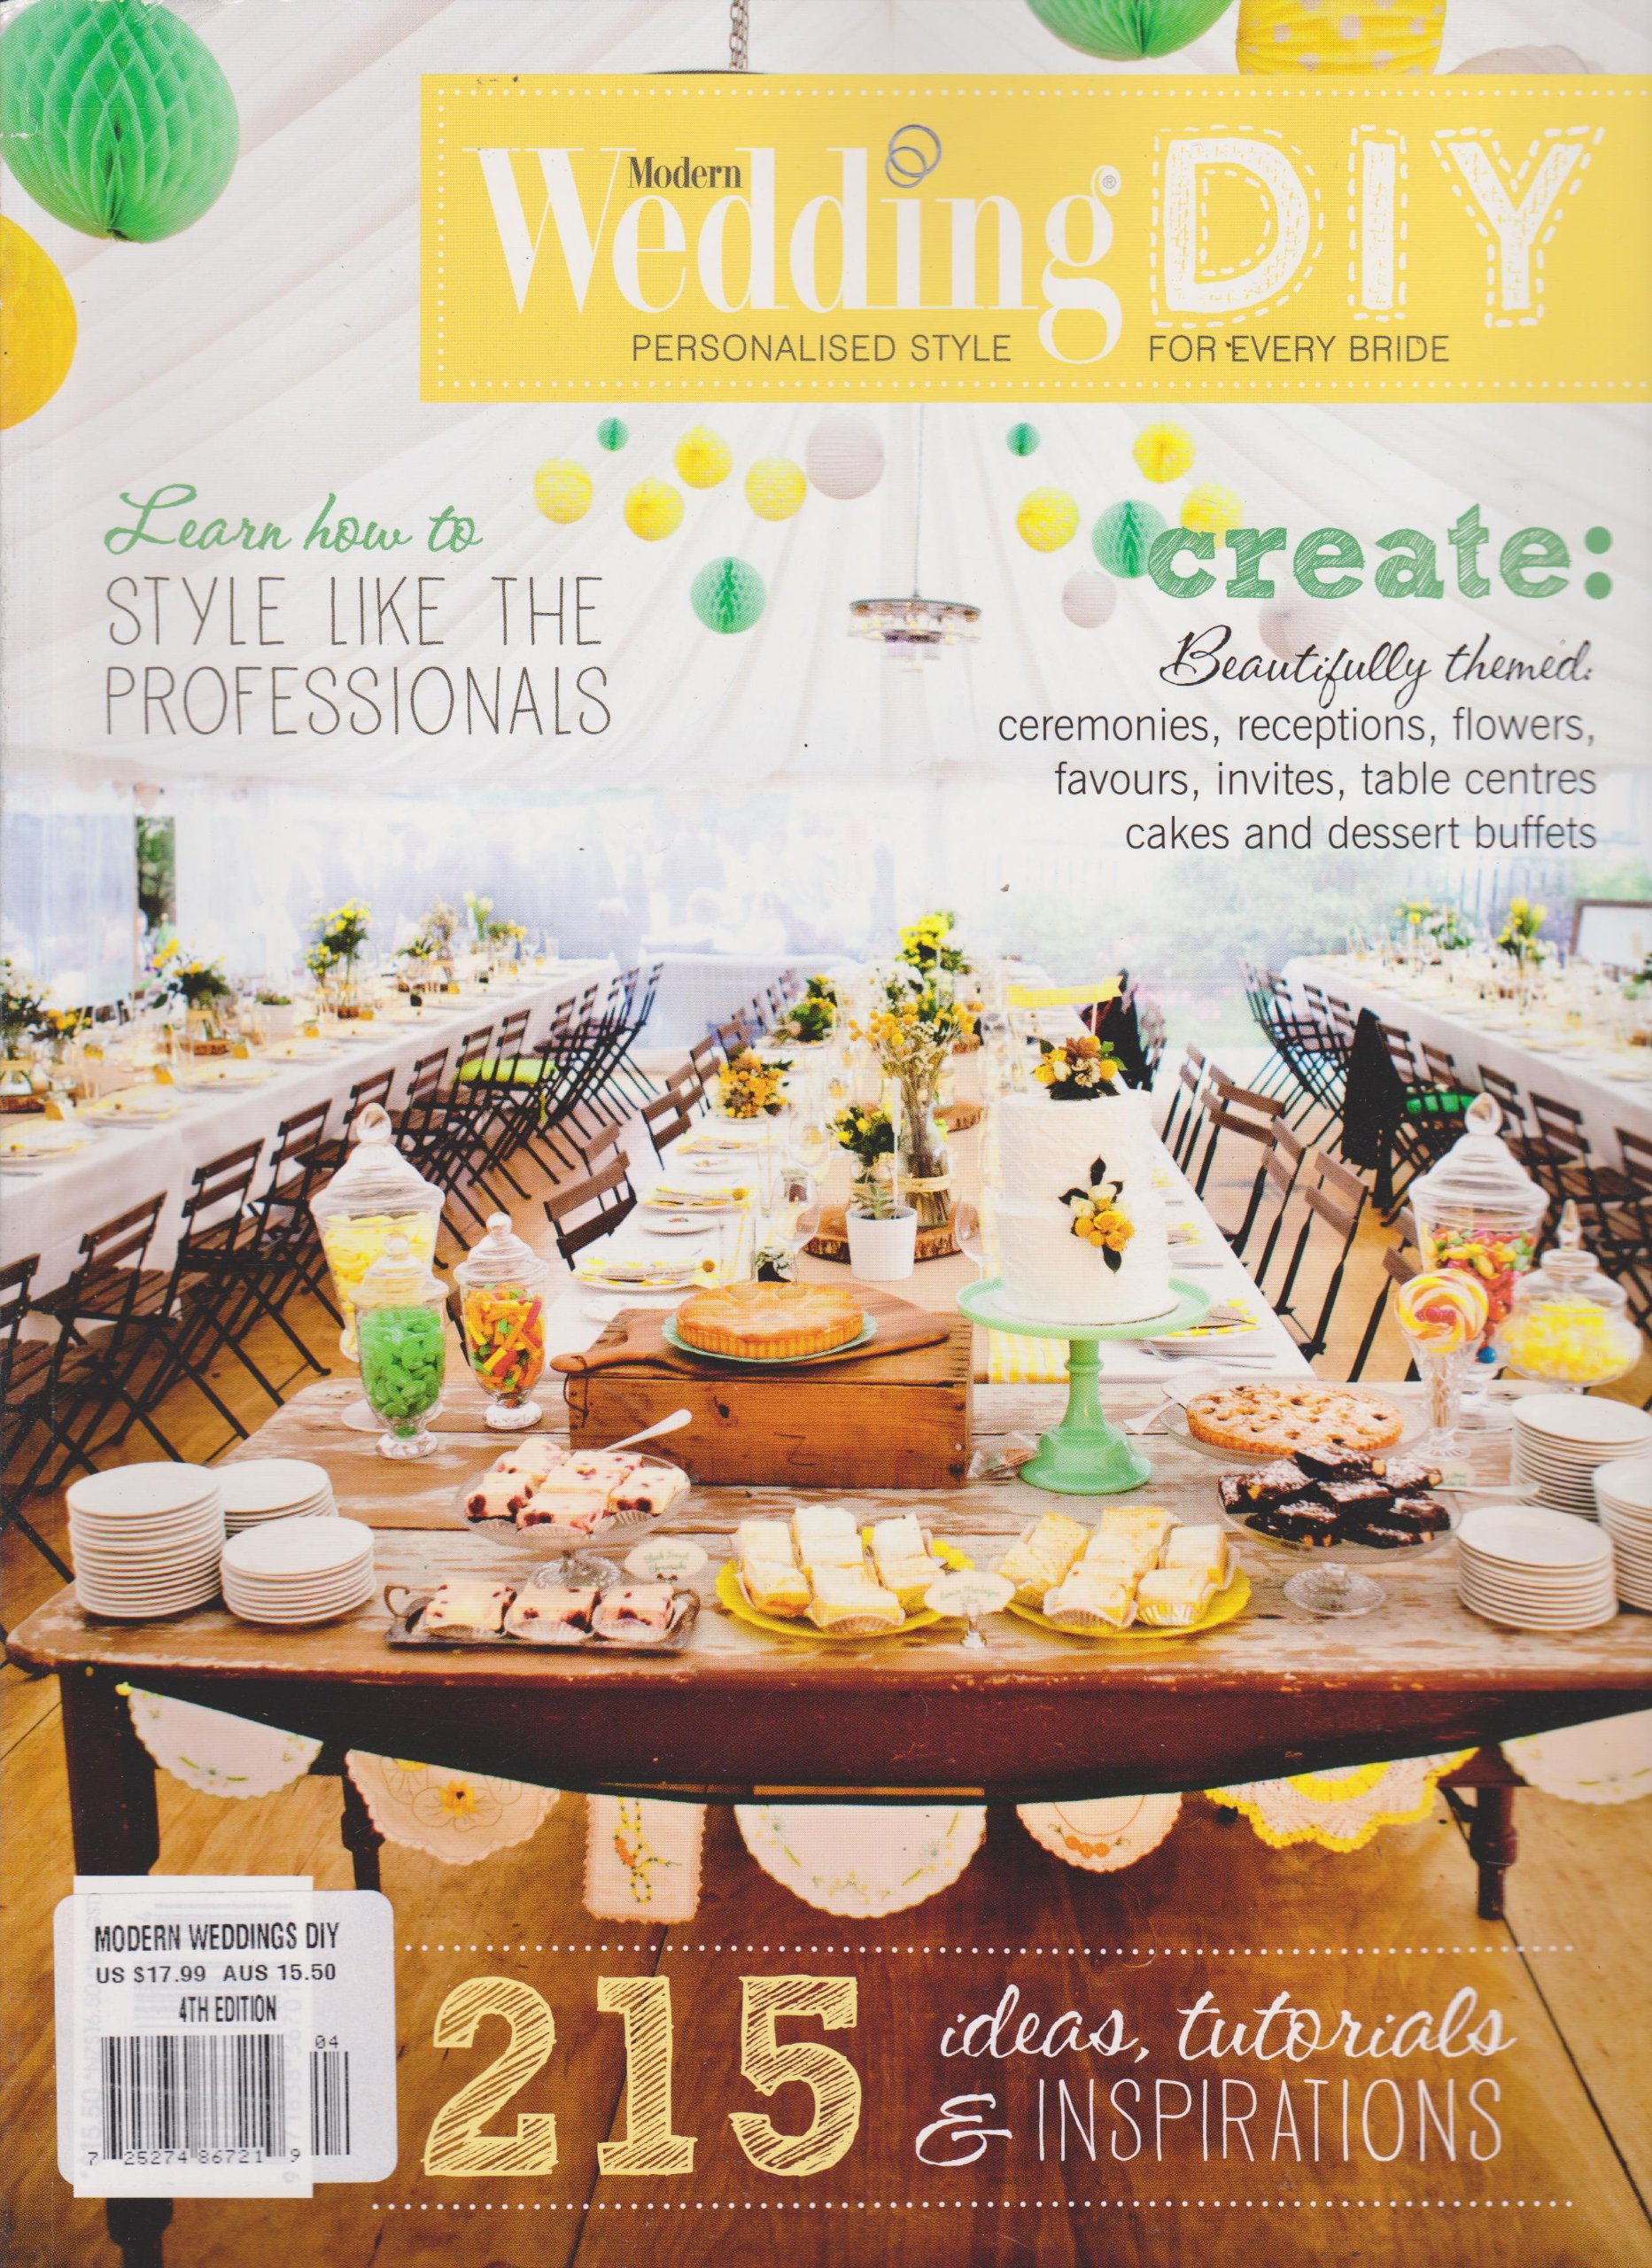 Modern Wedding DIY Magazine 4th Edition PDF